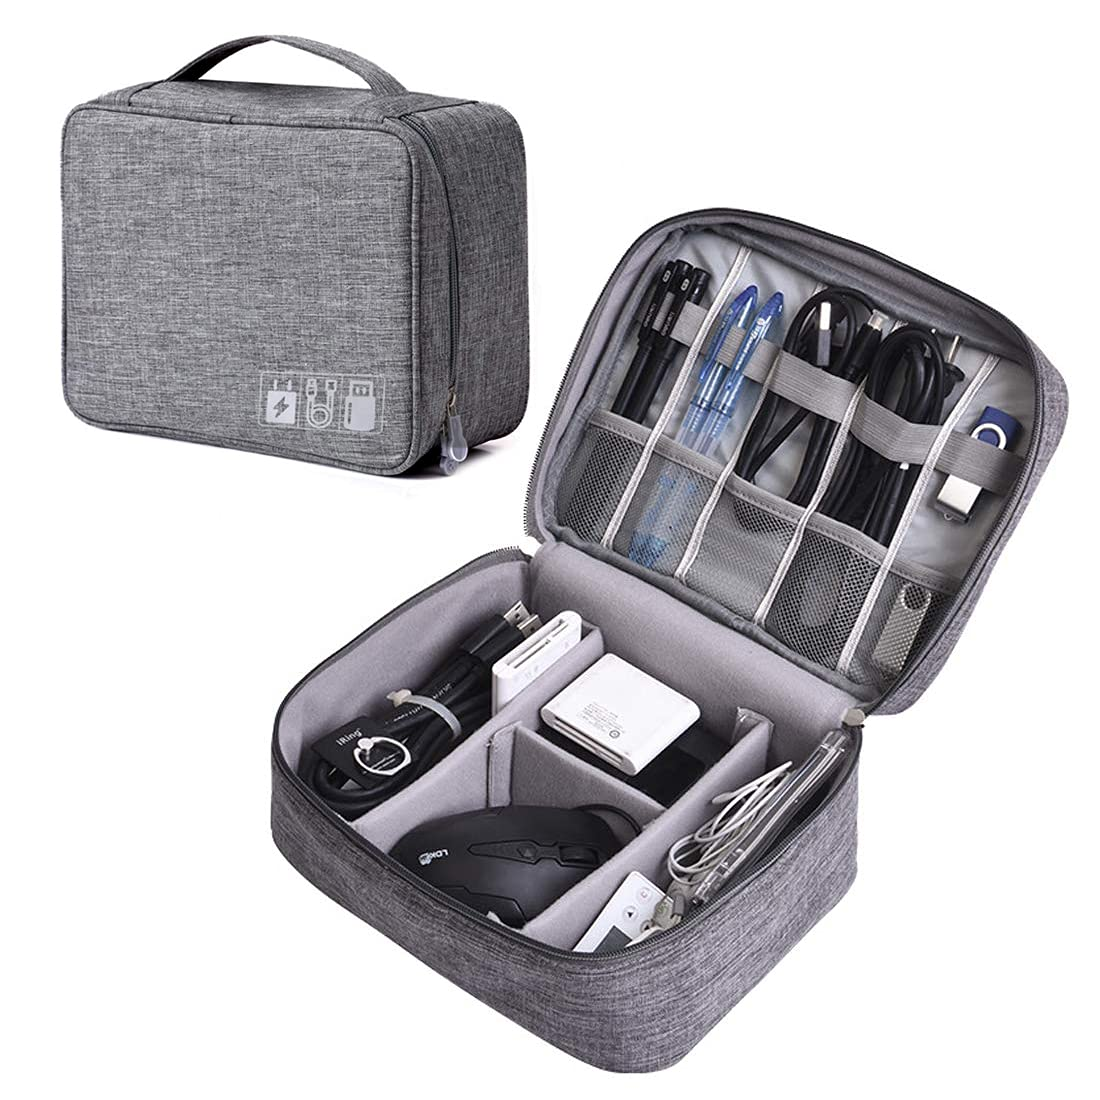 Electronic Organizer Travel Universal Cable Organizer Electronics Accessories Storage Bag Gadget Gear Cases for iPad Mini, Kindle, Smartphone, Cable, Charger, Power Bank, USB, SD Card (Grey)